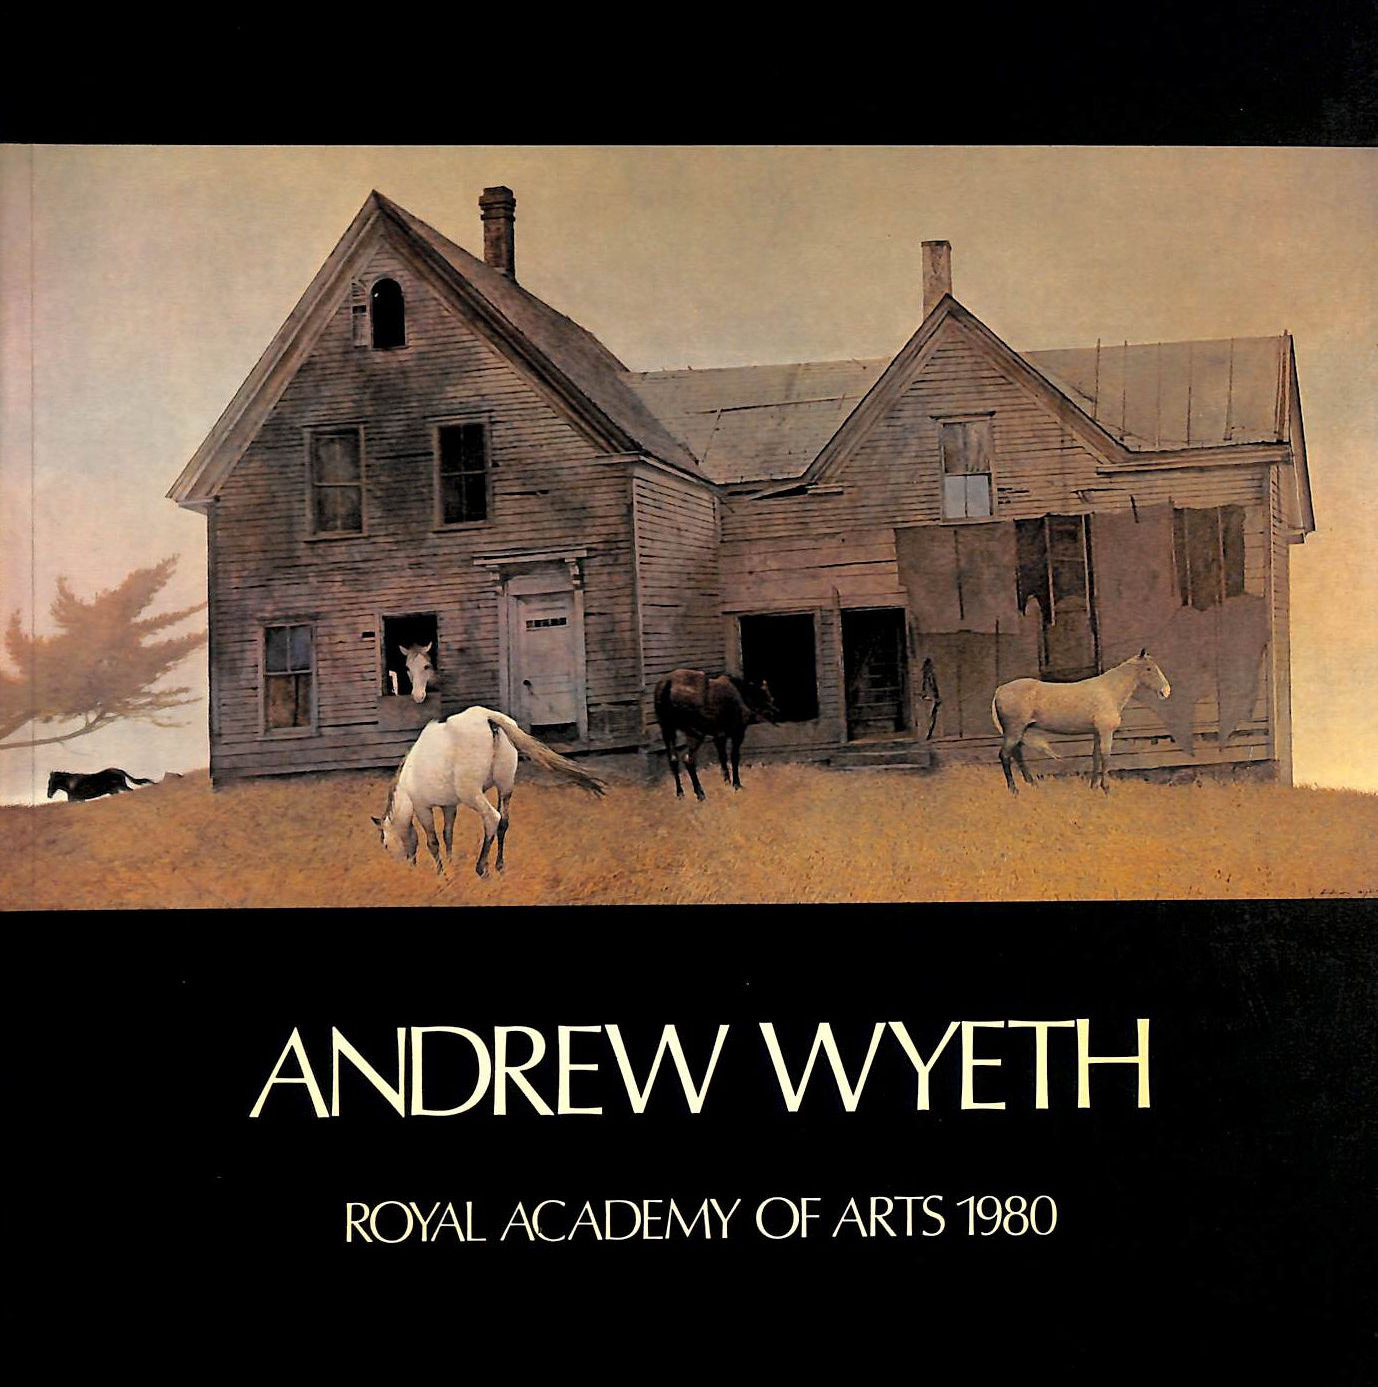 Image for Andrew Wyeth Royal Academy of Arts 1980